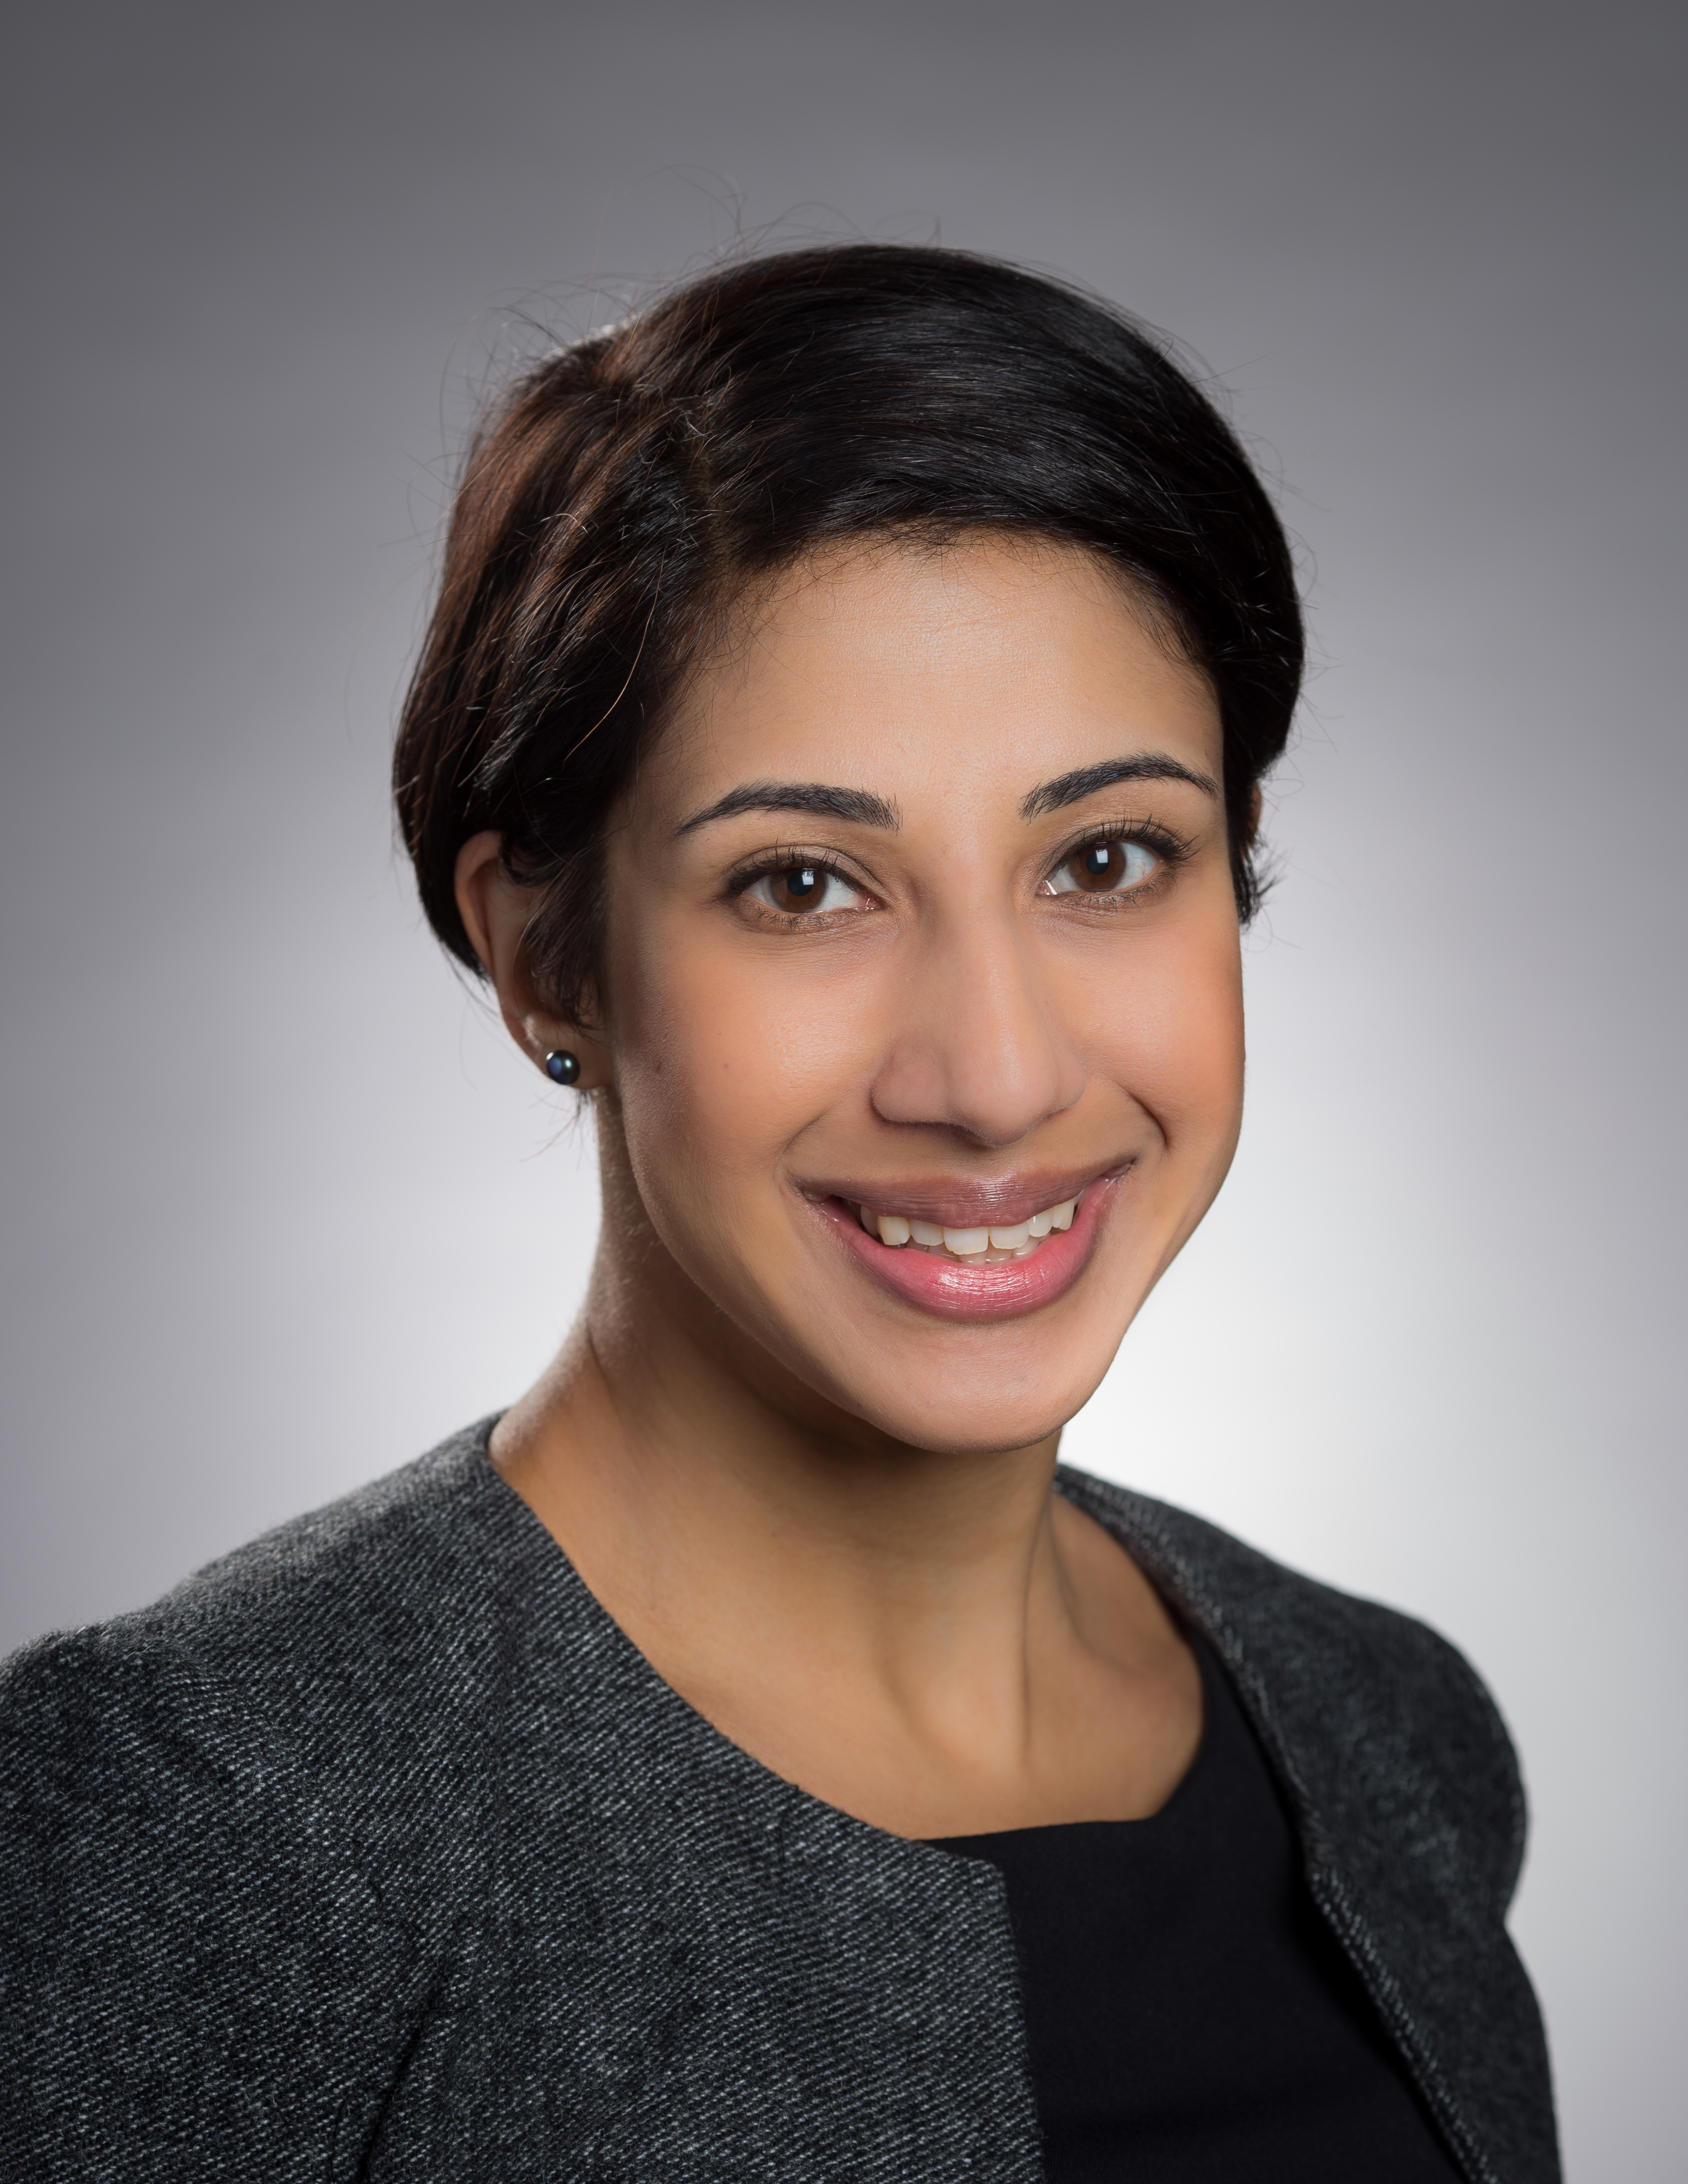 This is a photo of Sabreena Delhon, who is the manager of the Action Group on Access to Justice or TAG, a project based at the Law Society of Upper Canada